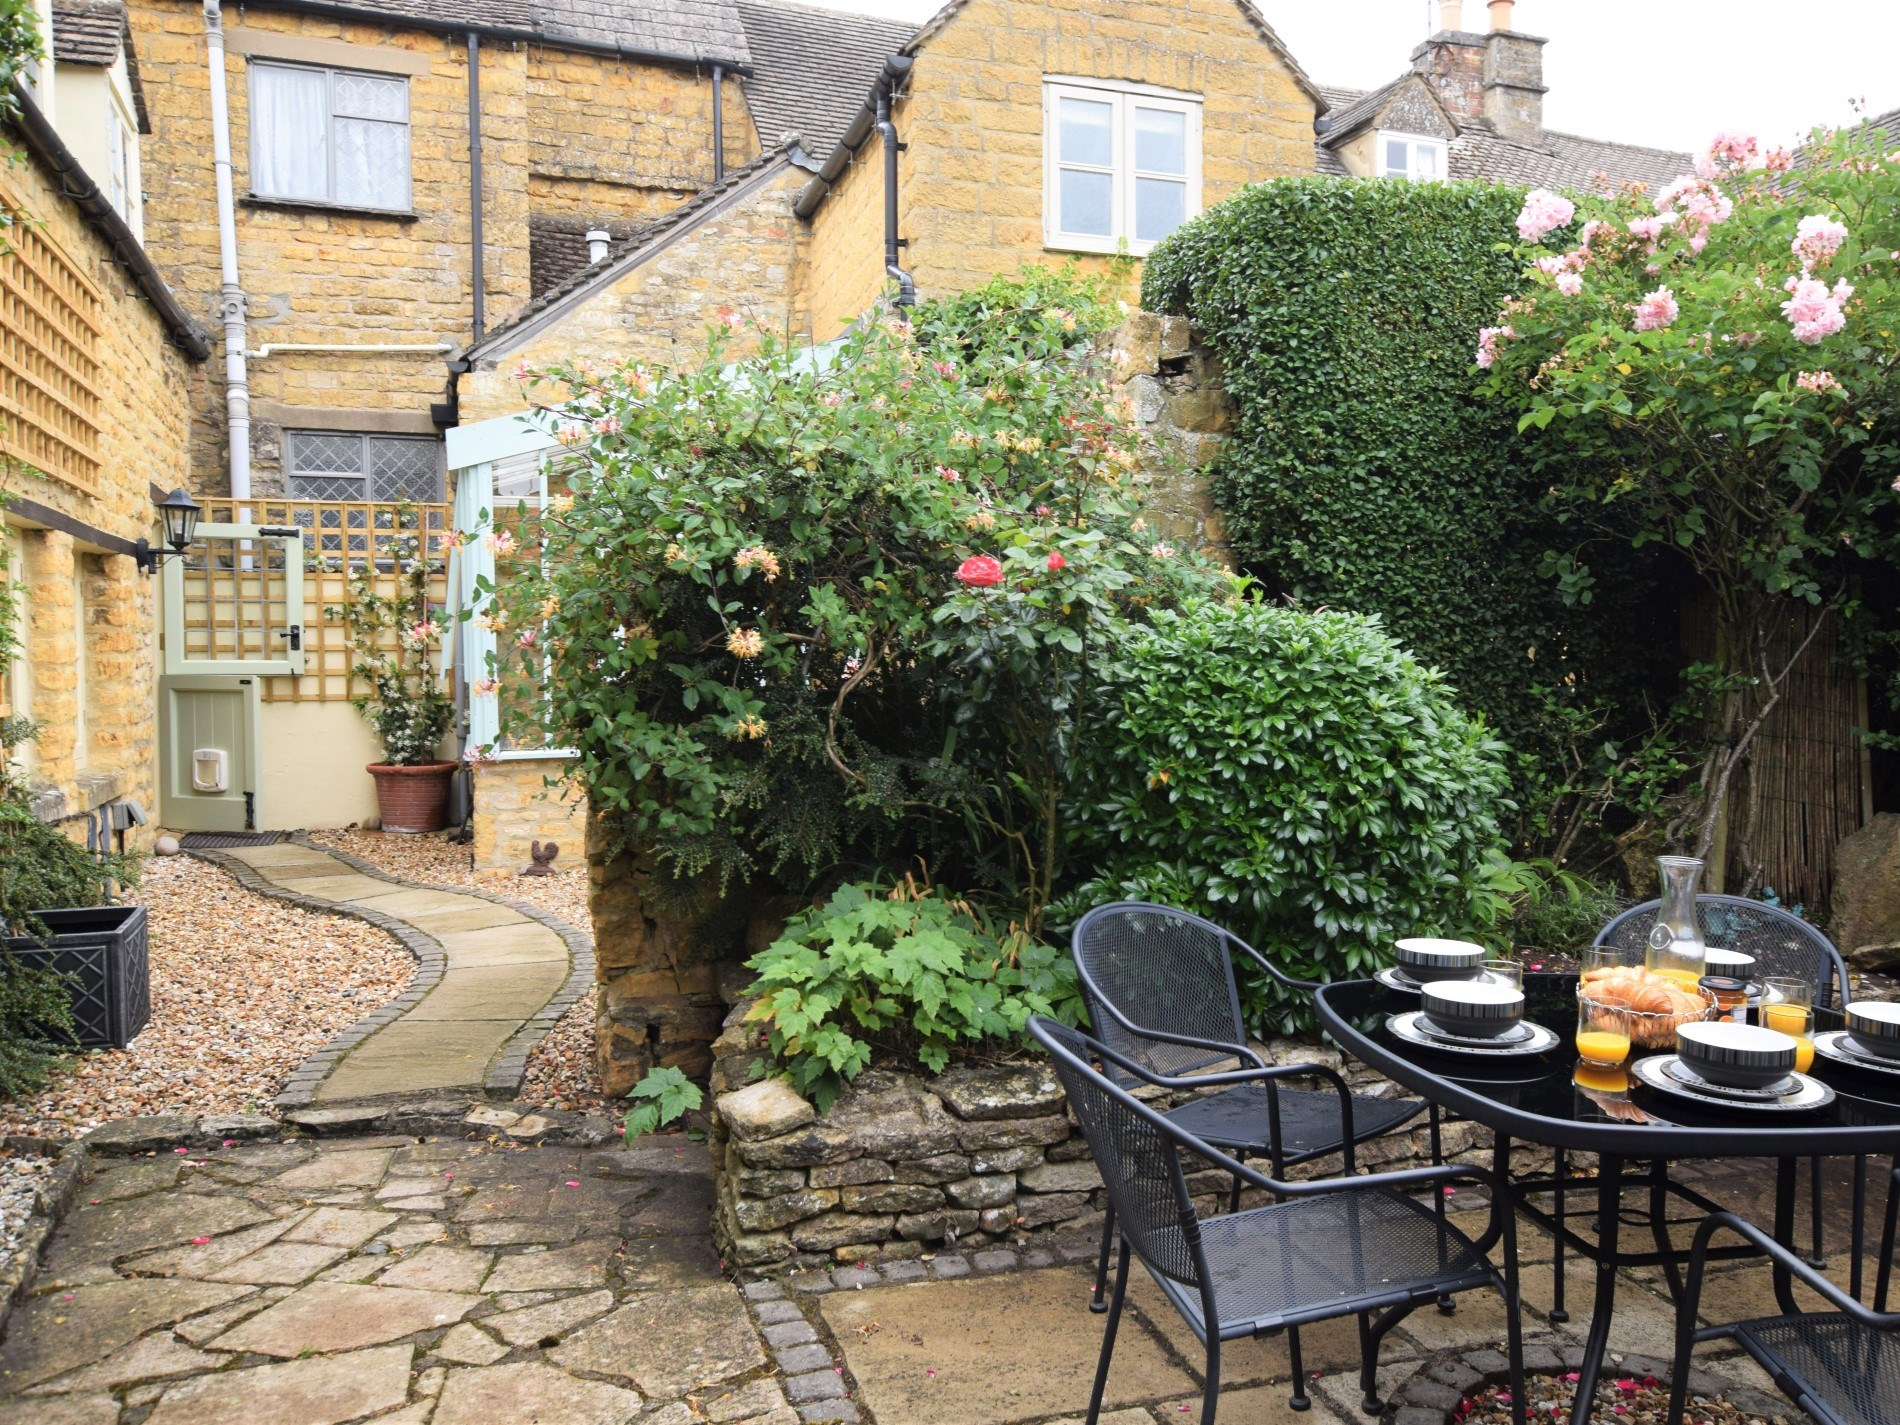 Relax in the pretty enclosed patio with seating